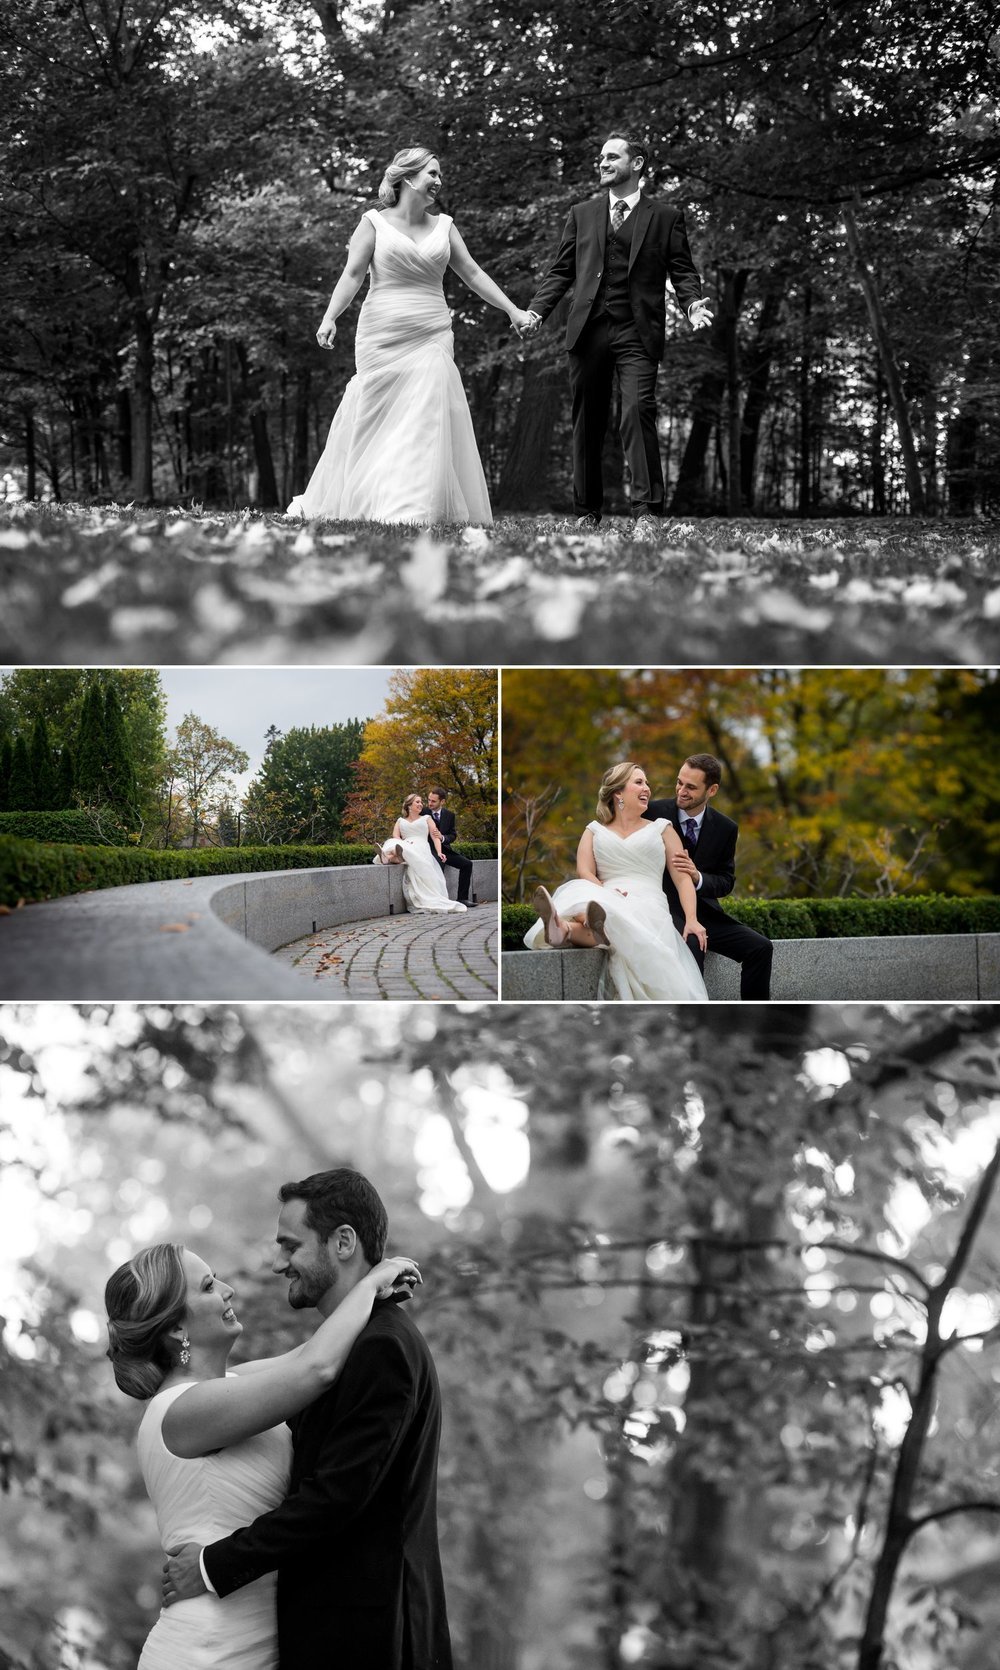 Portraits of the bride and groom taken outside at Rockcliffe Park in Ottawa